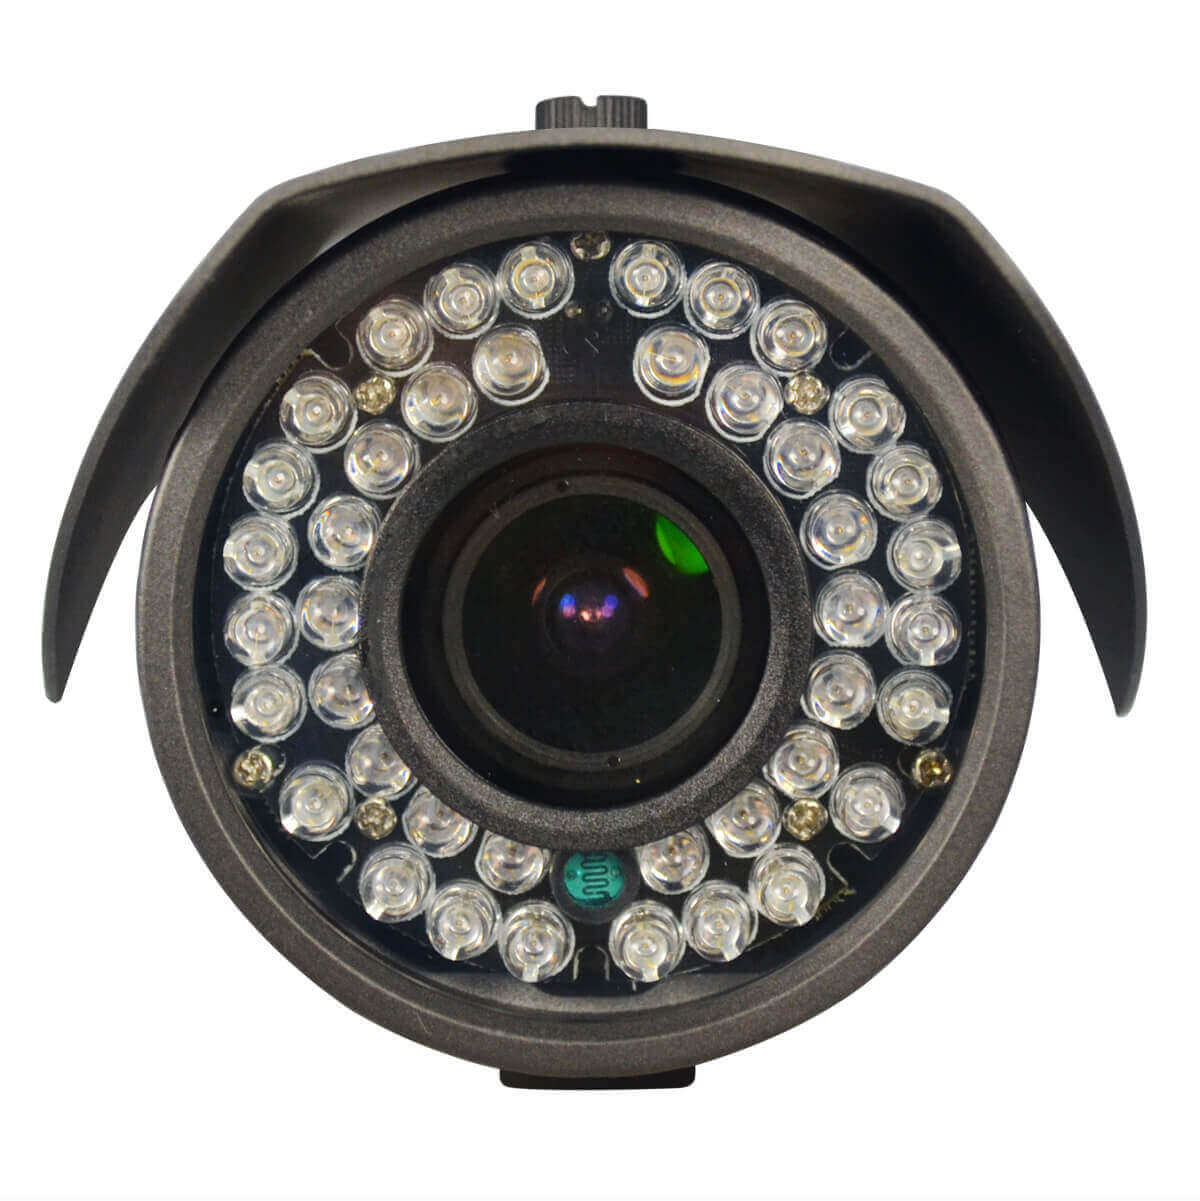 Camara Bazuca IP, 1.3Mp, lente varifocal, 42 LED, 10-15m IR, PoE